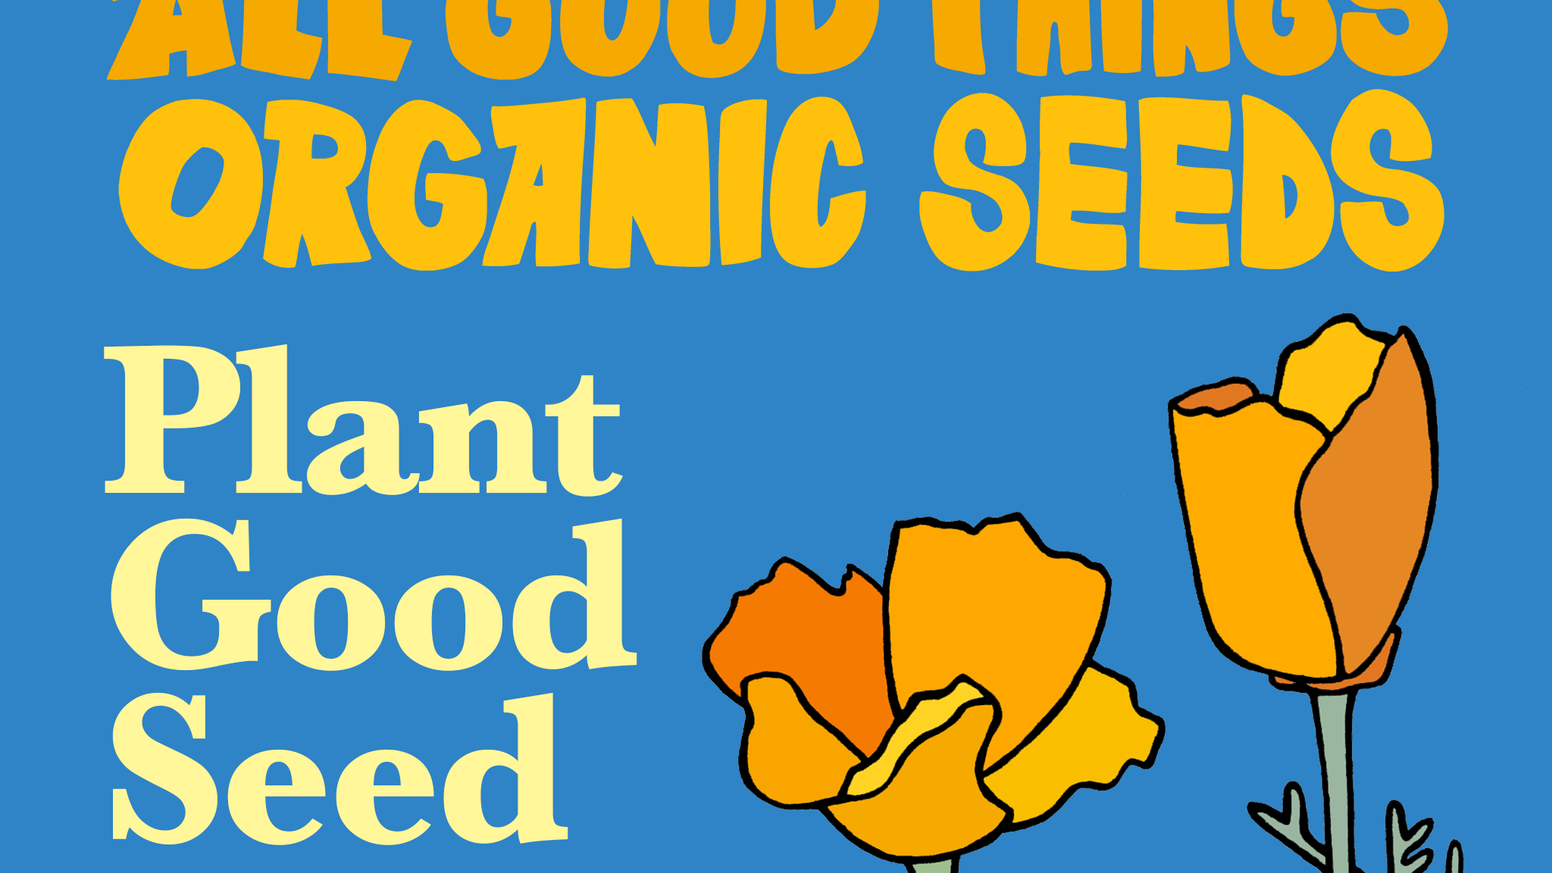 Plant Good Seed Invest In Your Future With Our Seed Company By All